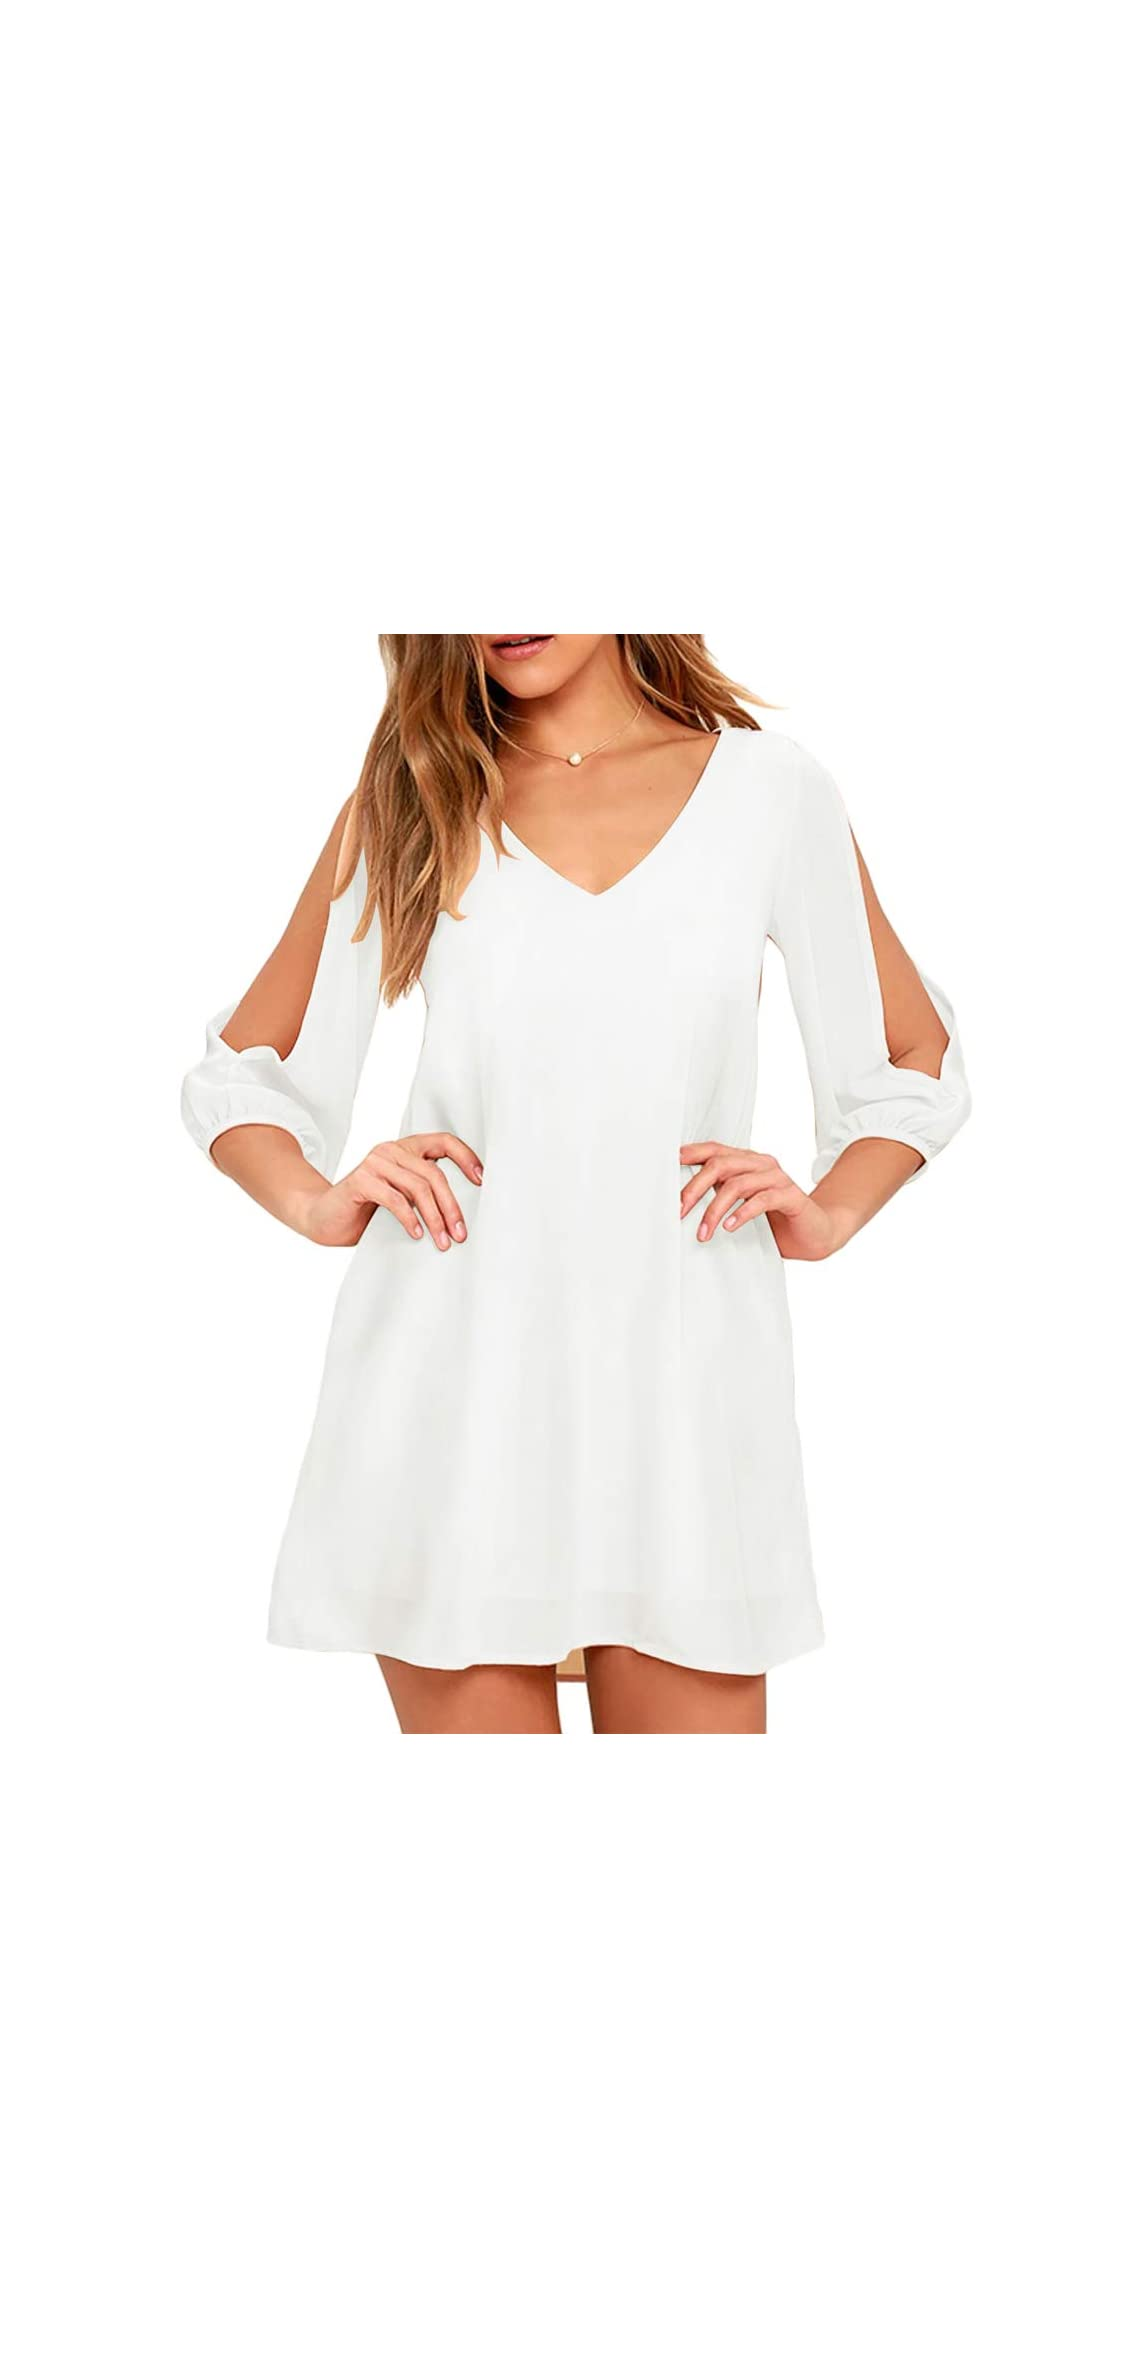 Women's Long Sleeve Casual Loose Summer Midi Shift